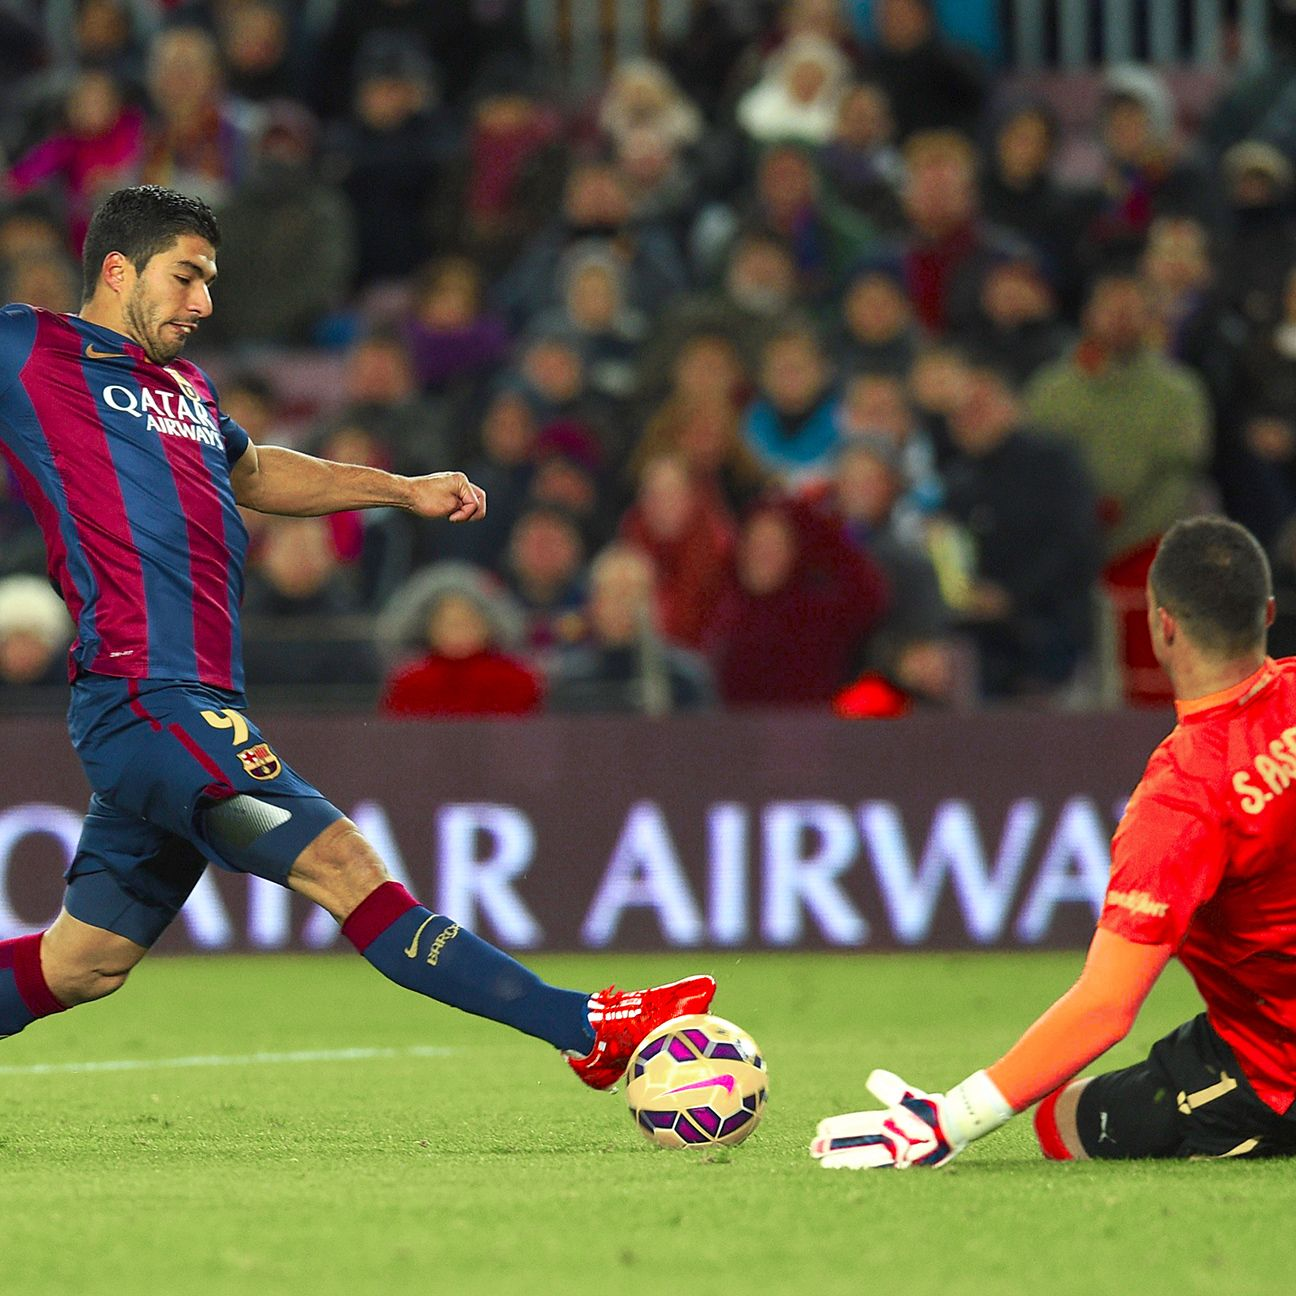 Luis Suarez's uptick in form bodes well for Barcelona.